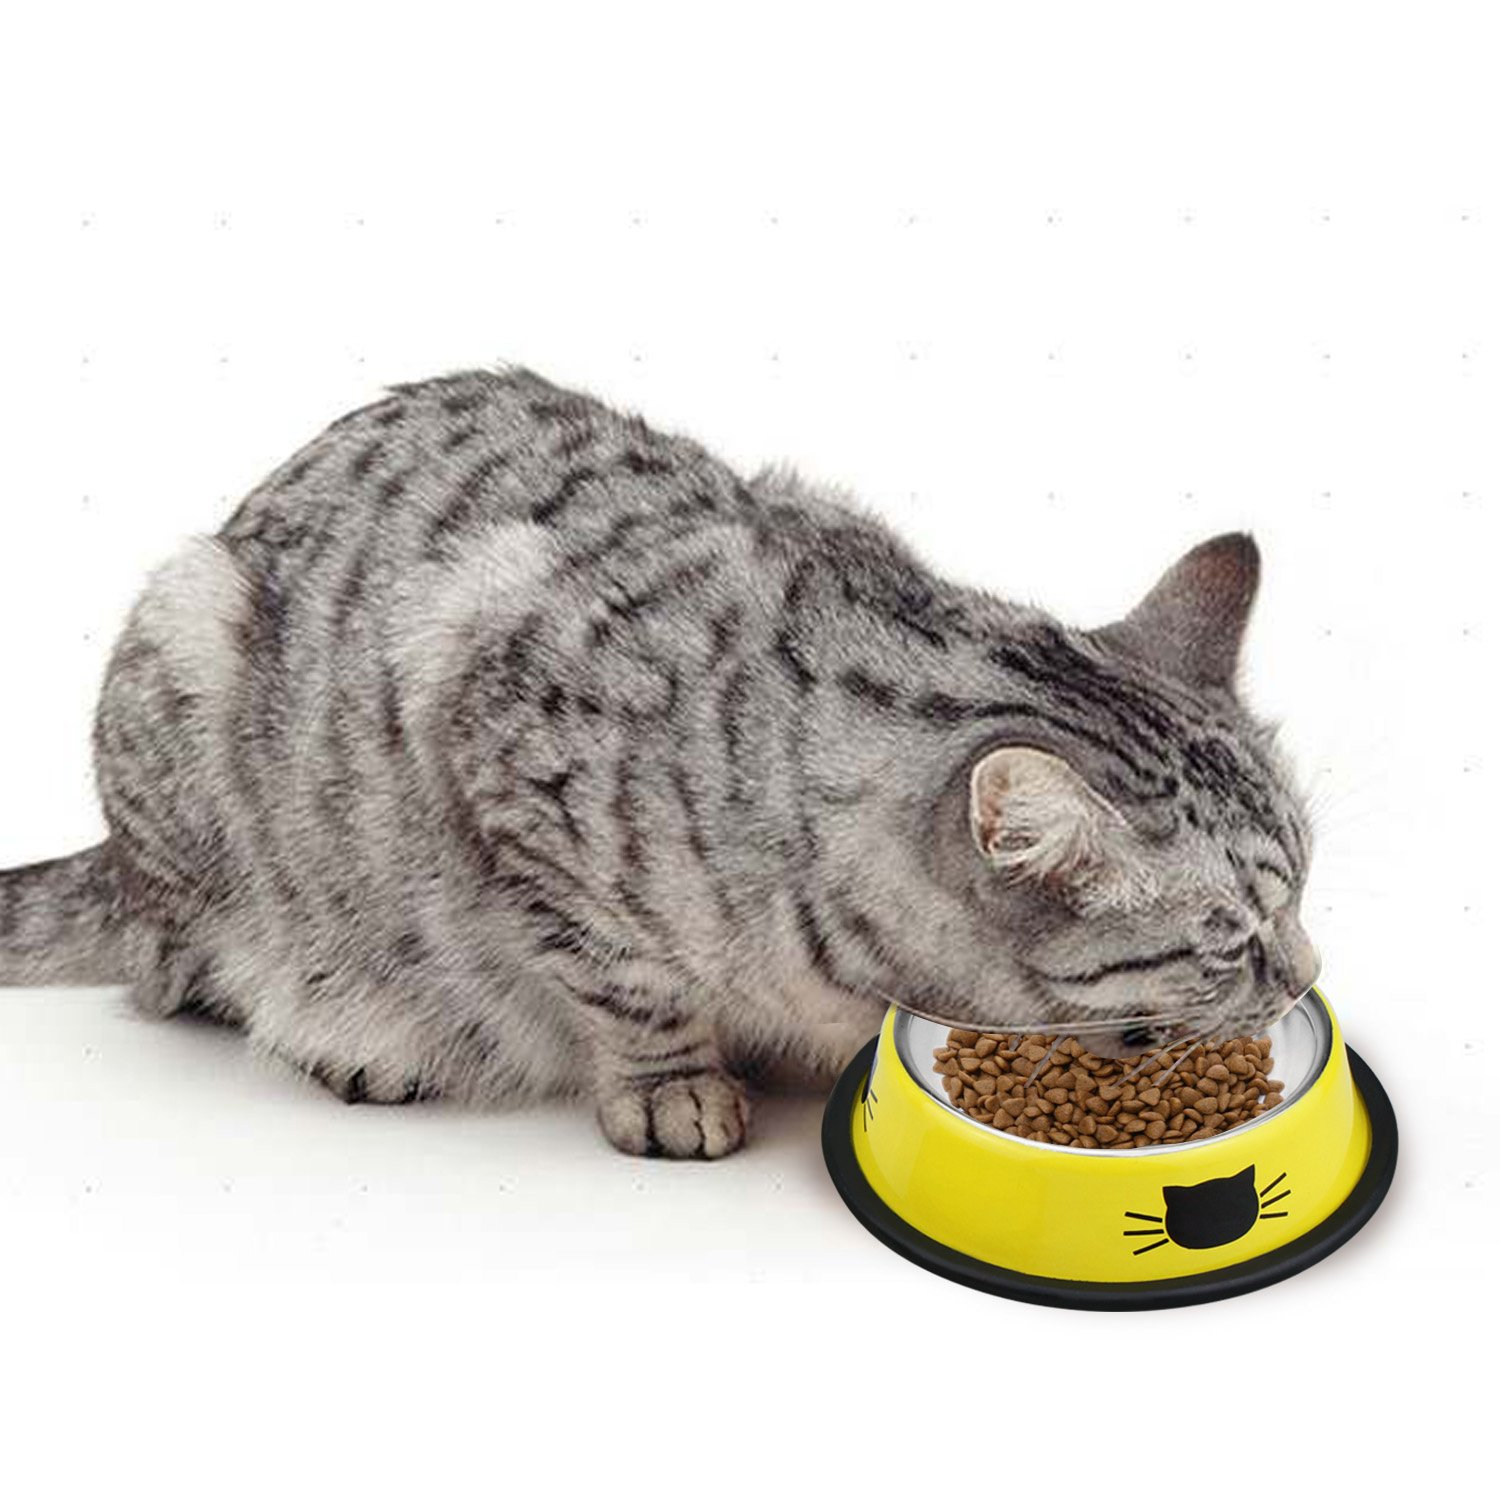 Comsmart Stainless Steel Pet Cat Bowl Kitten Puppy Dish Bowl with Cute Cats Painted Non-Skid for Small Dogs Cats Animals (Set of 2) (Yellow/Yellow) by Comsmart (Image #10)